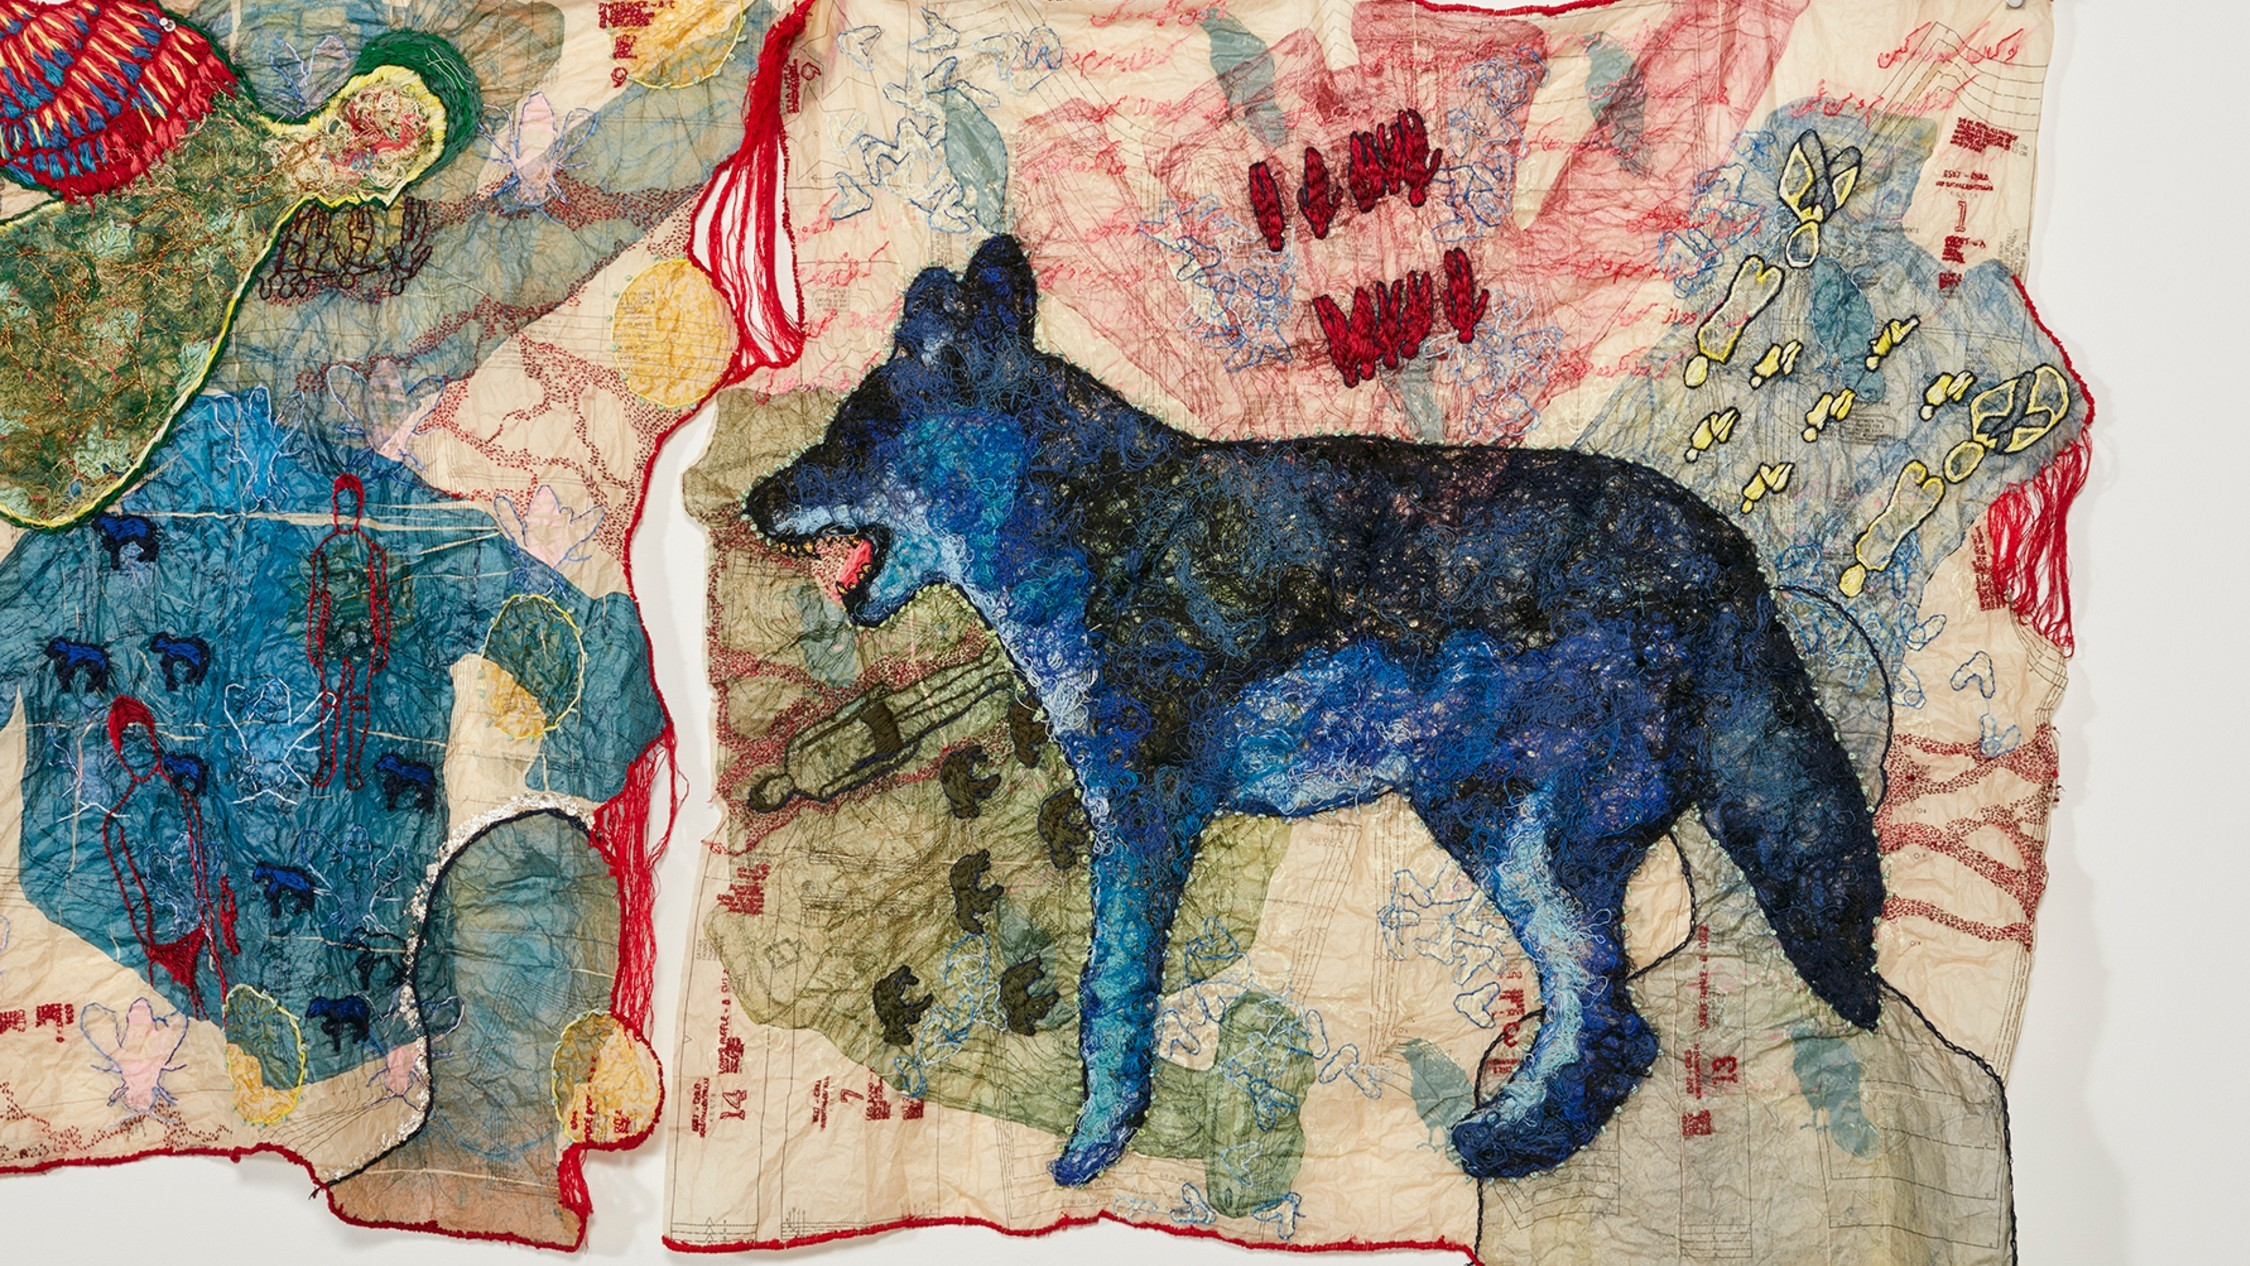 A beautiful tapestry depicting a blue dingo against a collage of images